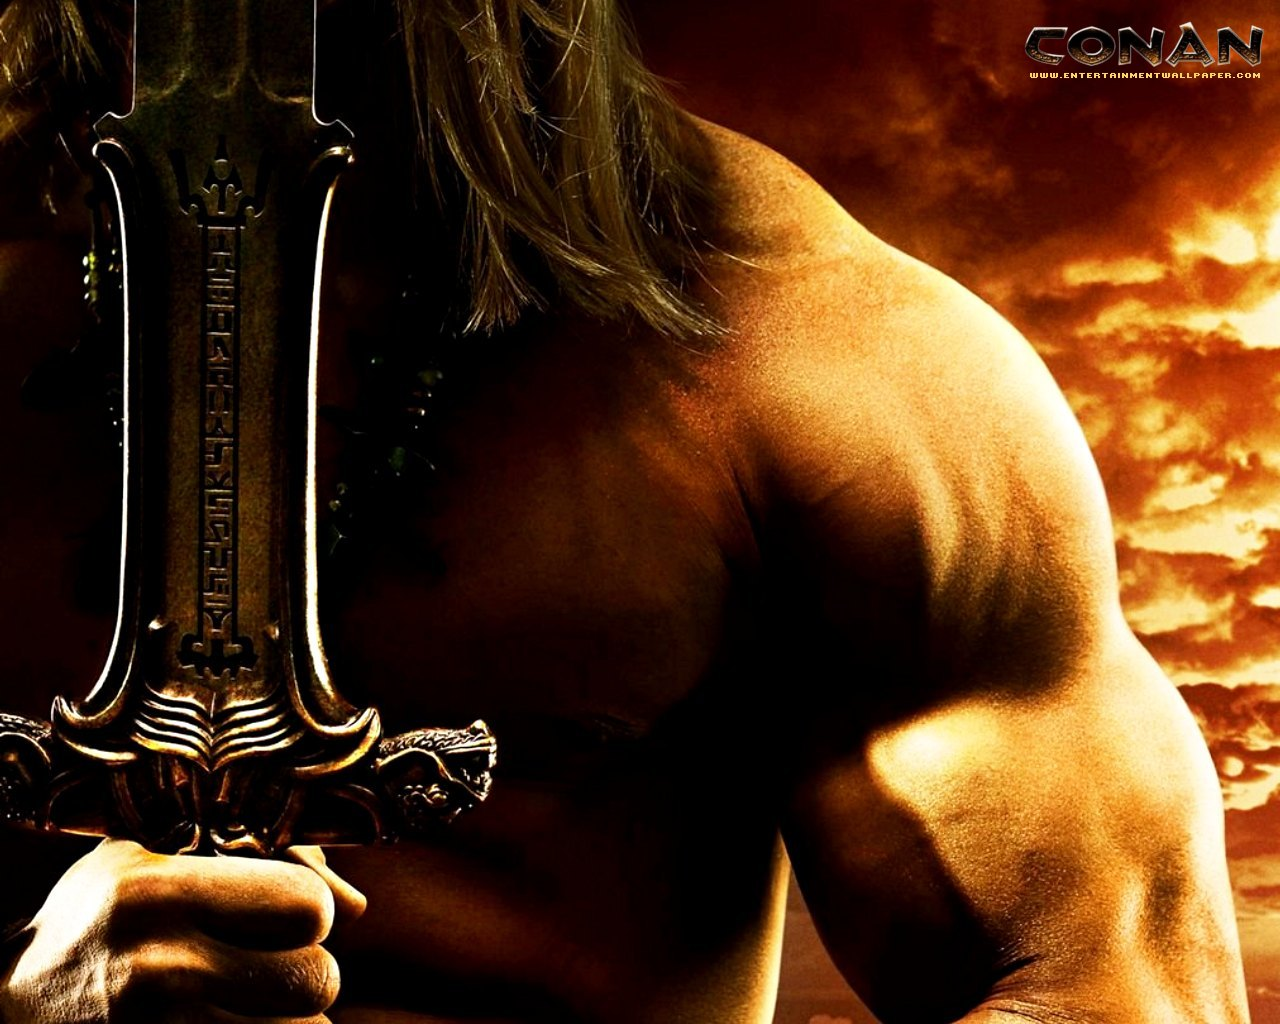 Conan The Barbarian 2011 images Conan the Barbarian HD 1280x1024